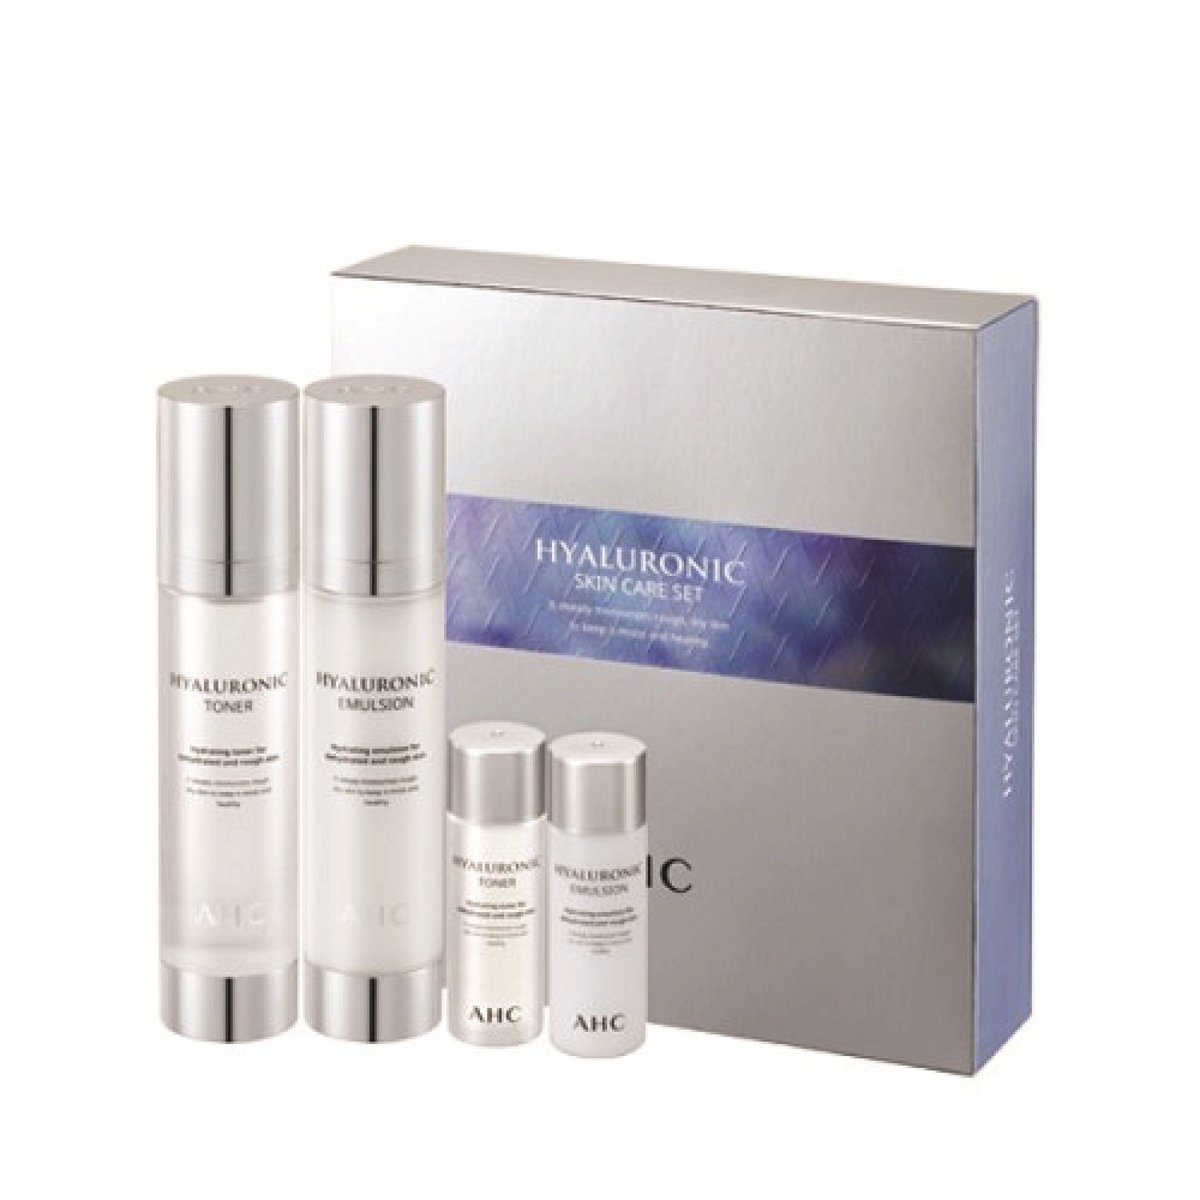 A.H.C Hyaluronic Skin Care 2 pcs Set  (Parallel Import)